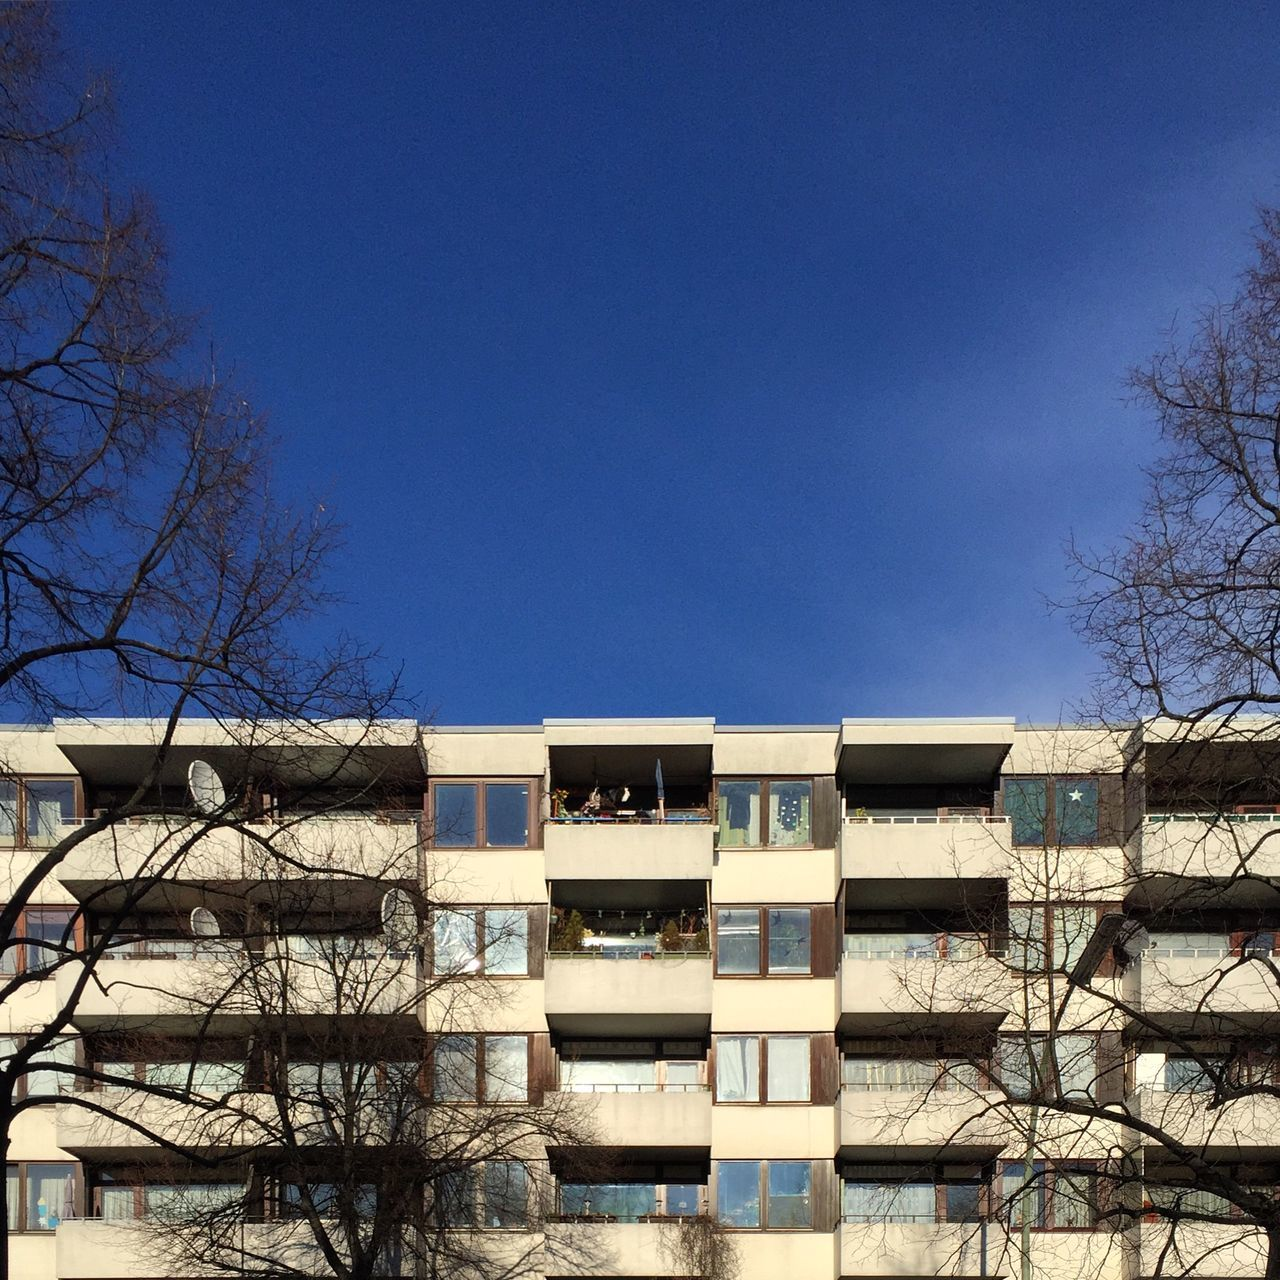 Abstract Architecture Architecture Balcony Bare Tree Berlin Berlin Photography Berliner Ansichten Berlinstagram Blue Branch Building Exterior Built Structure City Clear Sky Day Low Angle View Minimal Modern Architecture No People Outdoors Plattenbau Sky Stack Tree